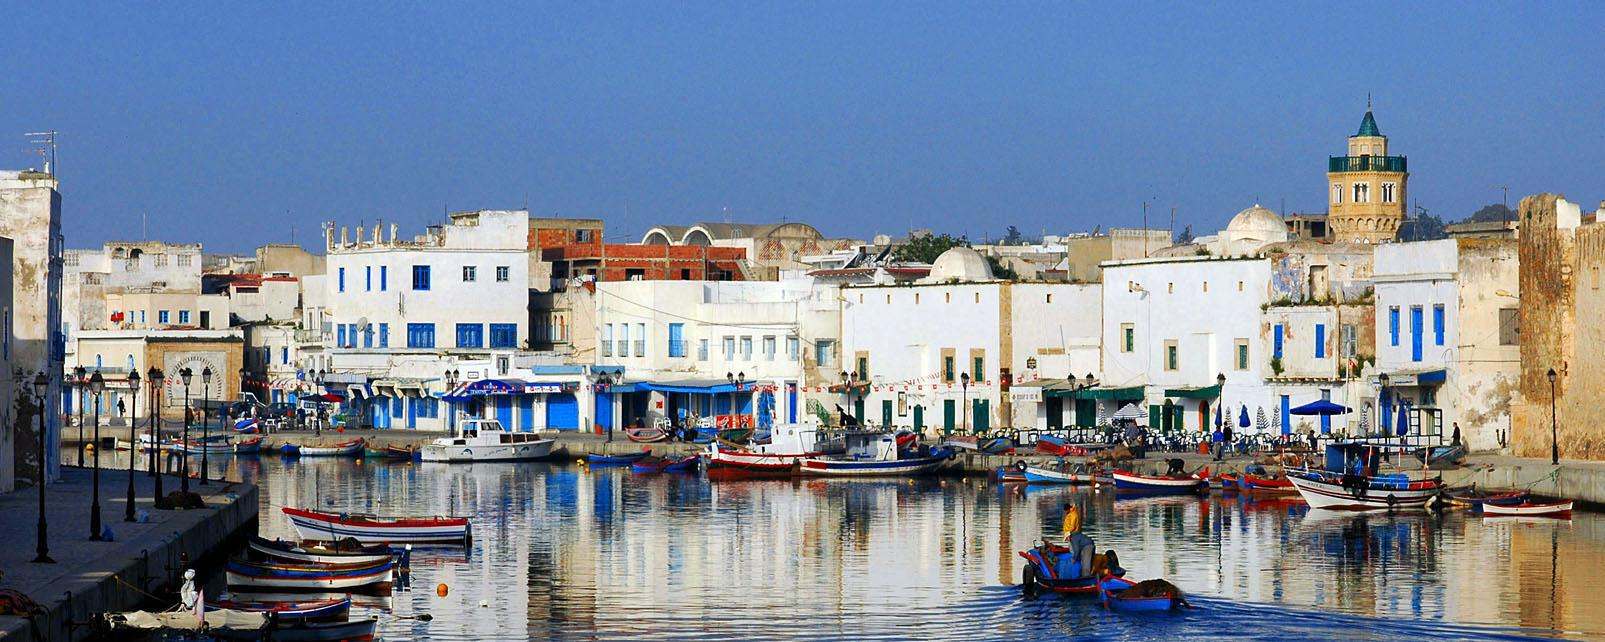 Bizerte Tunisia  city pictures gallery : Bizerte Tunisia